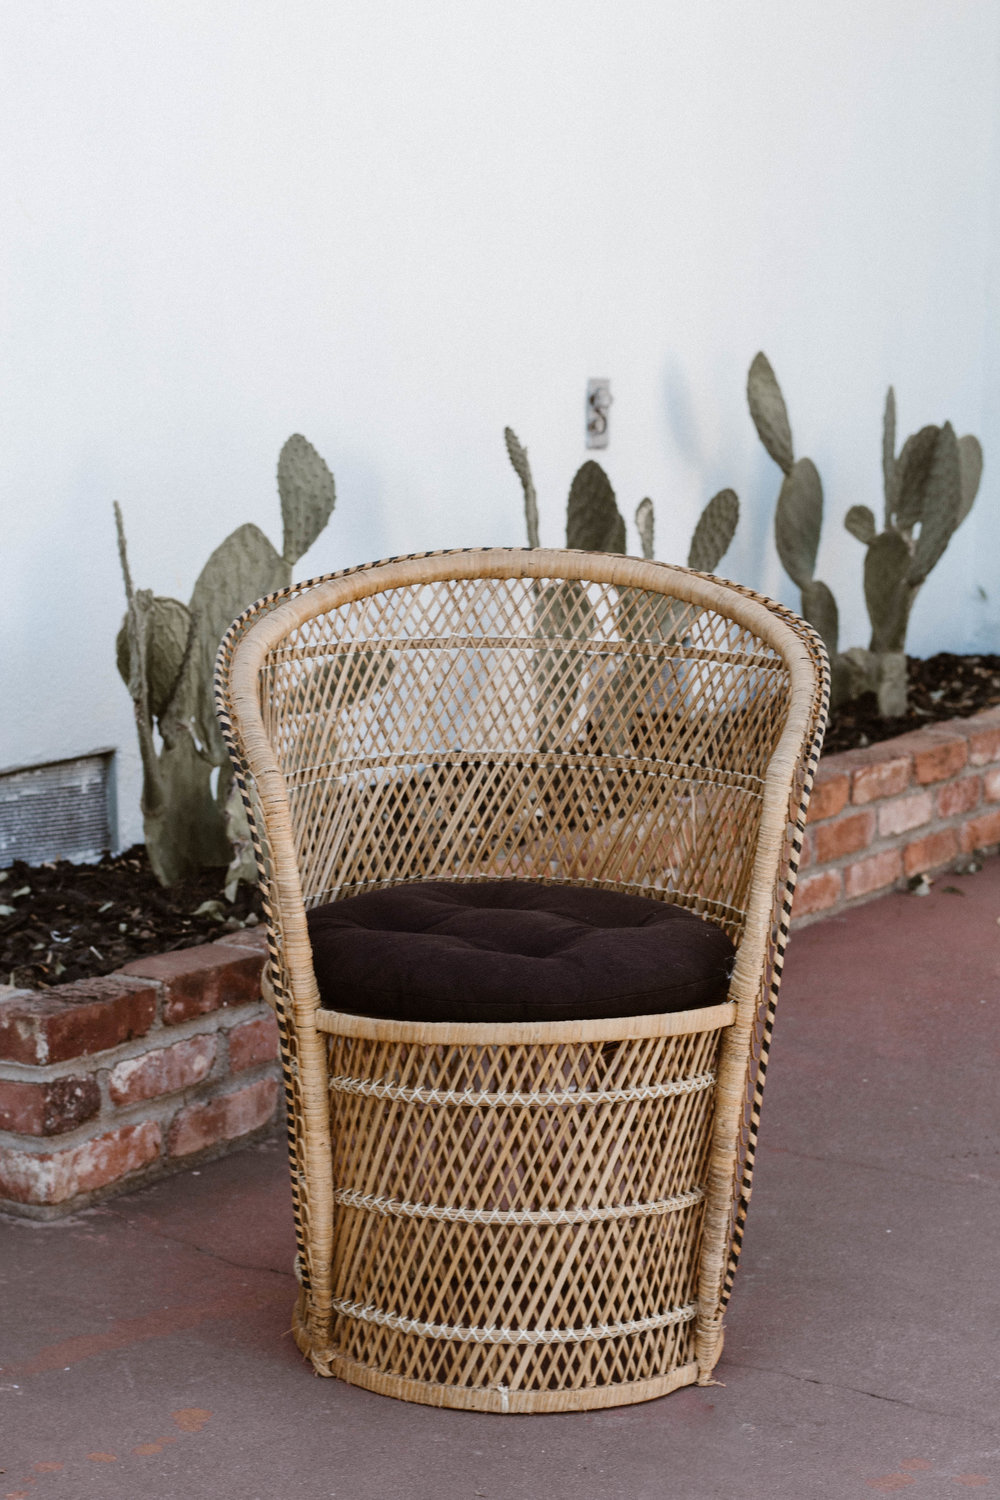 Marky Mark - (1) Natural color wicker barrel chair